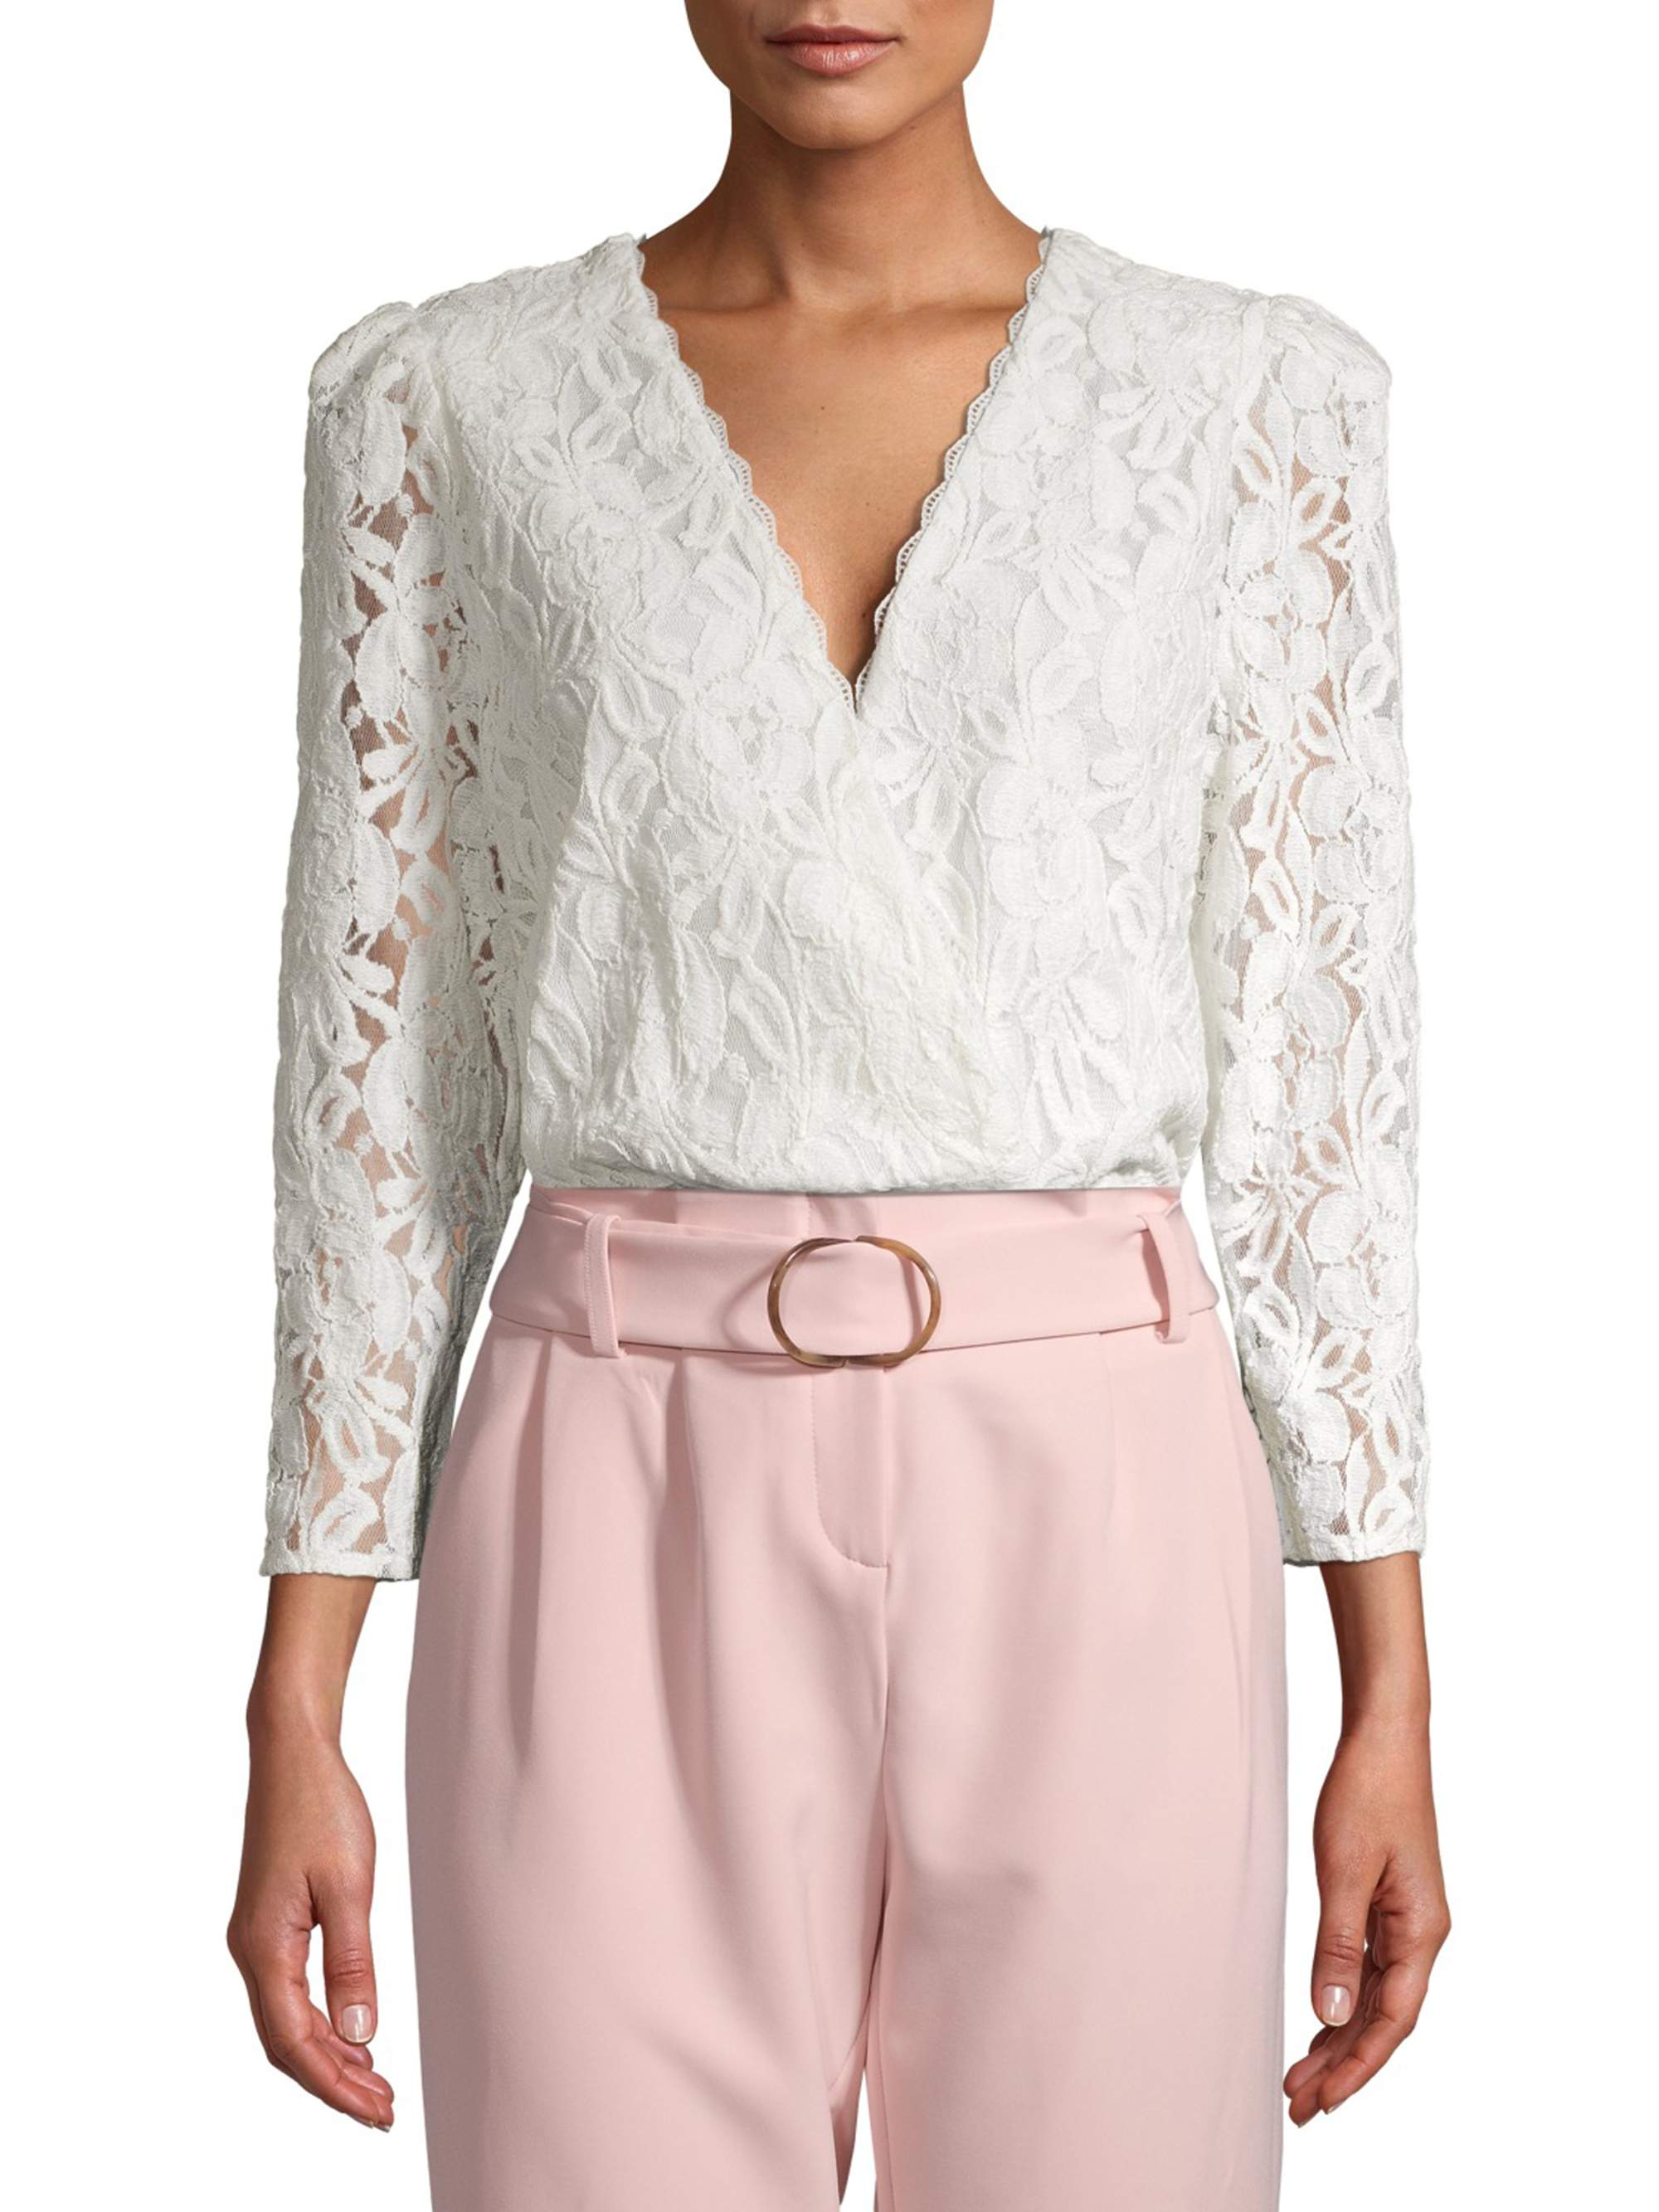 Prospect the label - Prospect the Label Women's Long Sleeve Lace ...